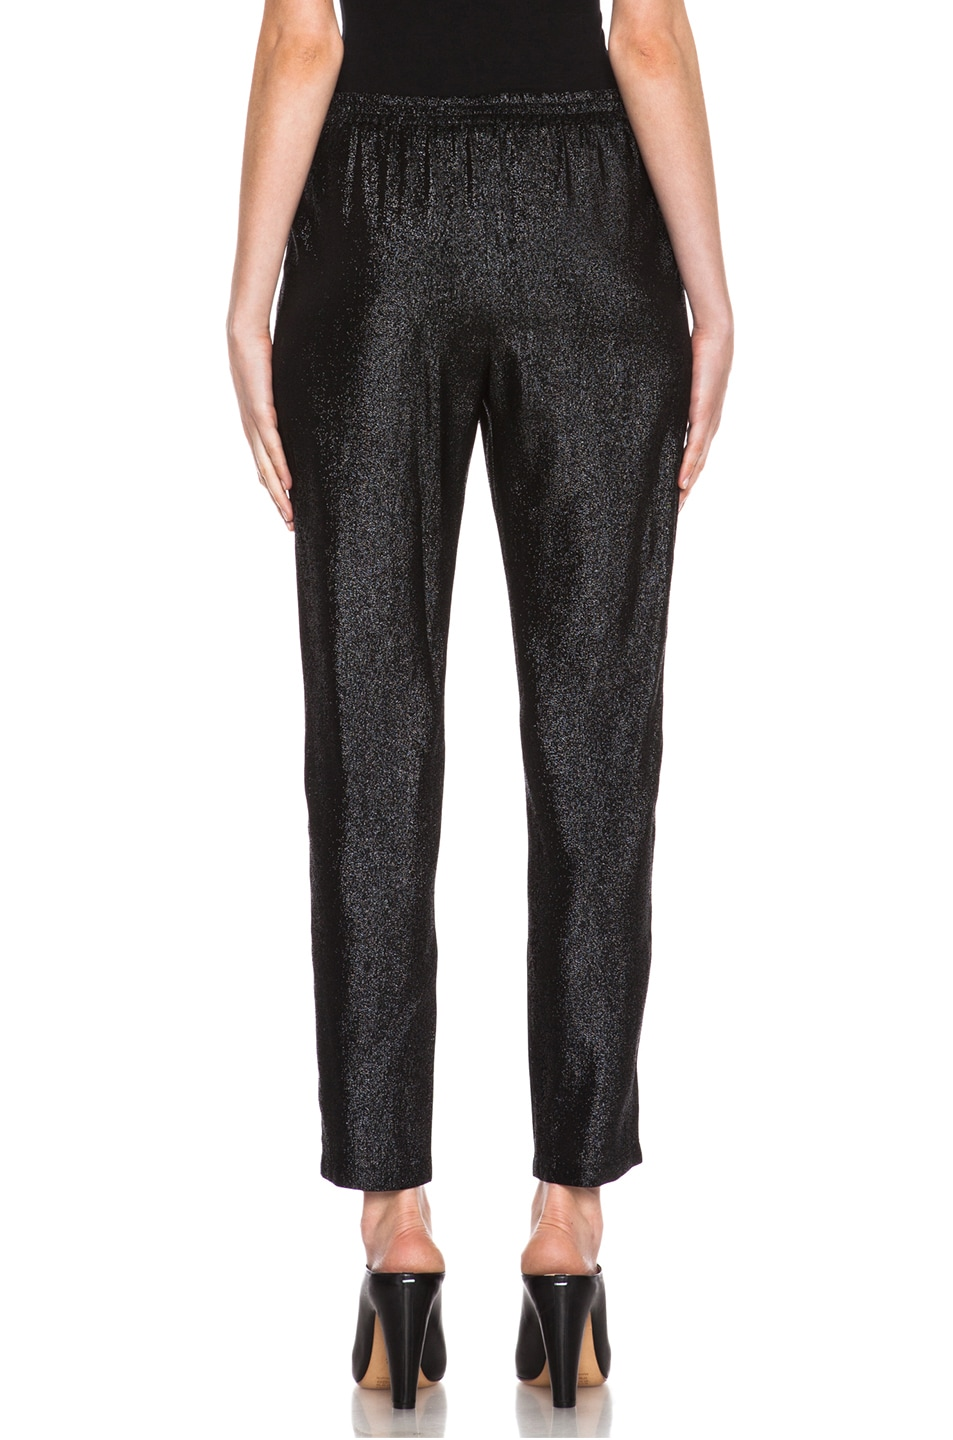 Image 4 of Stella McCartney Elastic Poly-Blend Trouser in Black Shine